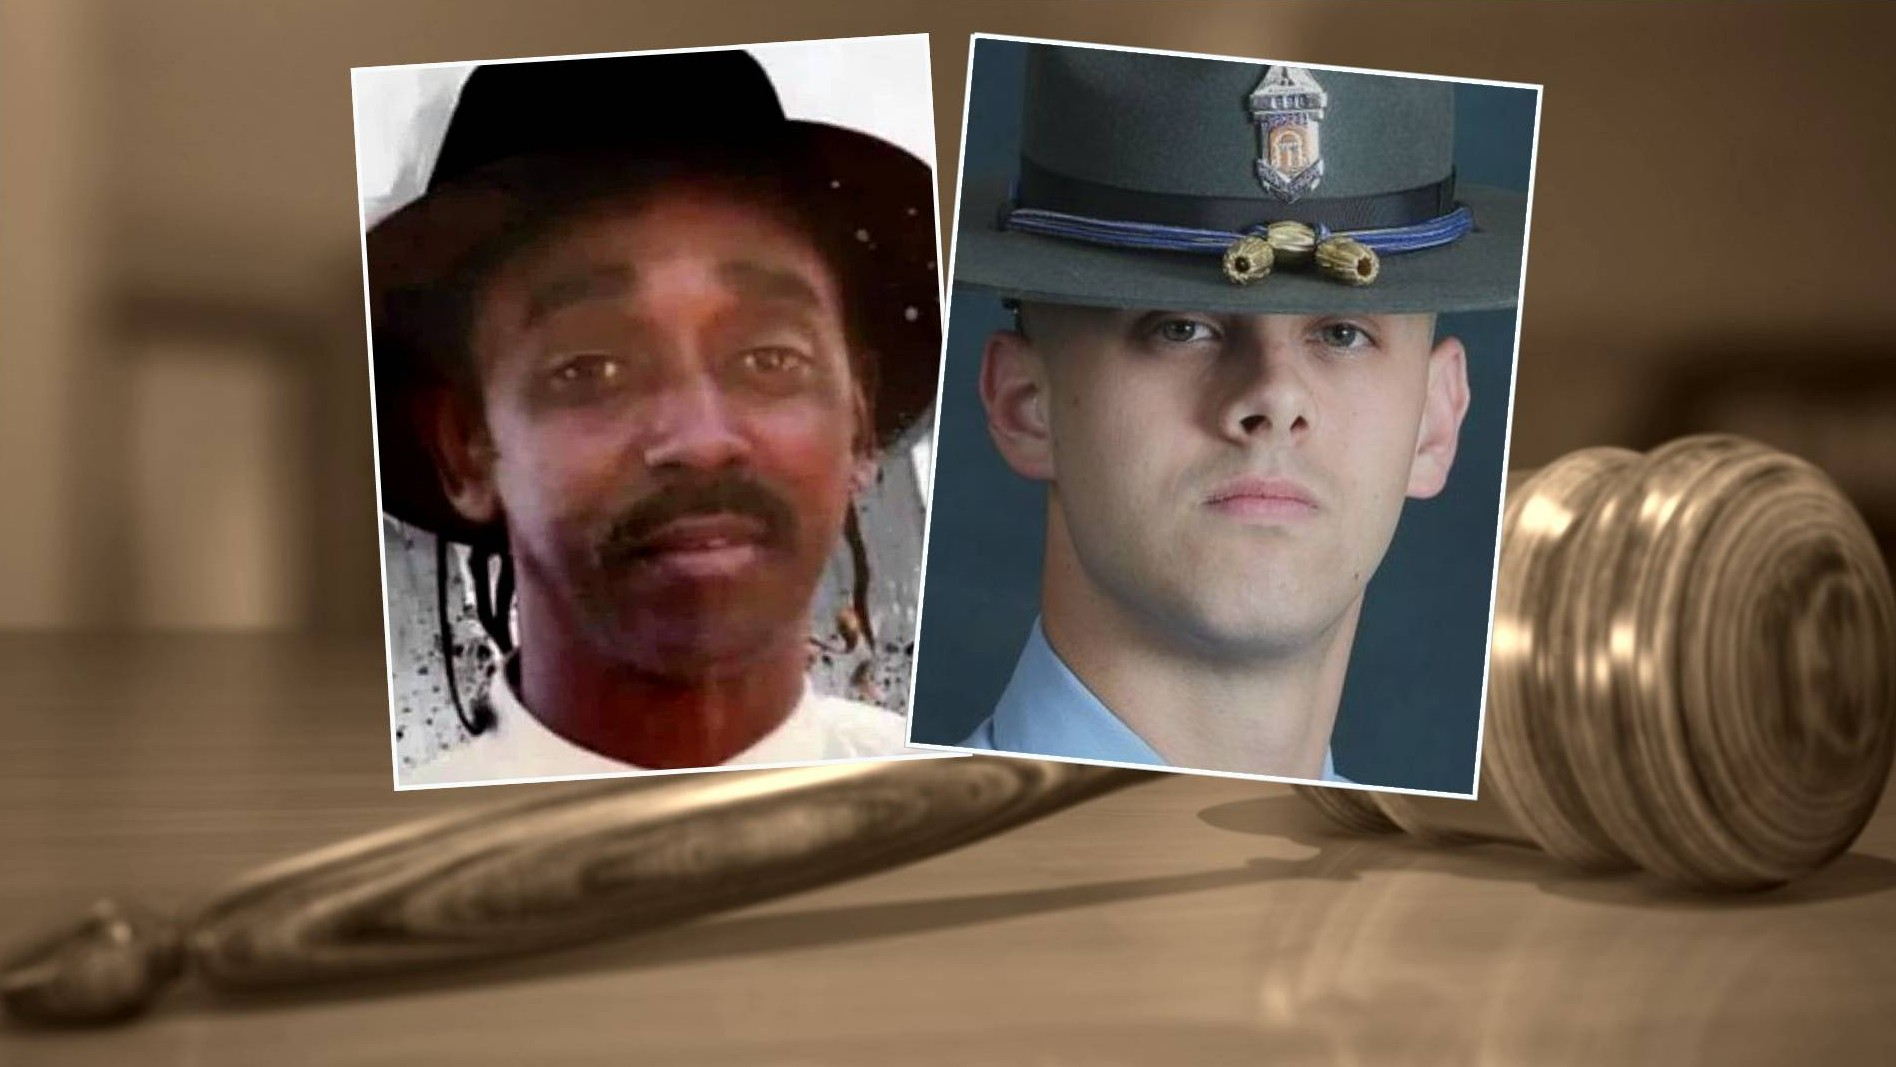 Son of Black Man Killed by Georgia State Trooper in 2020 Wants Federal Authorities to Investigate